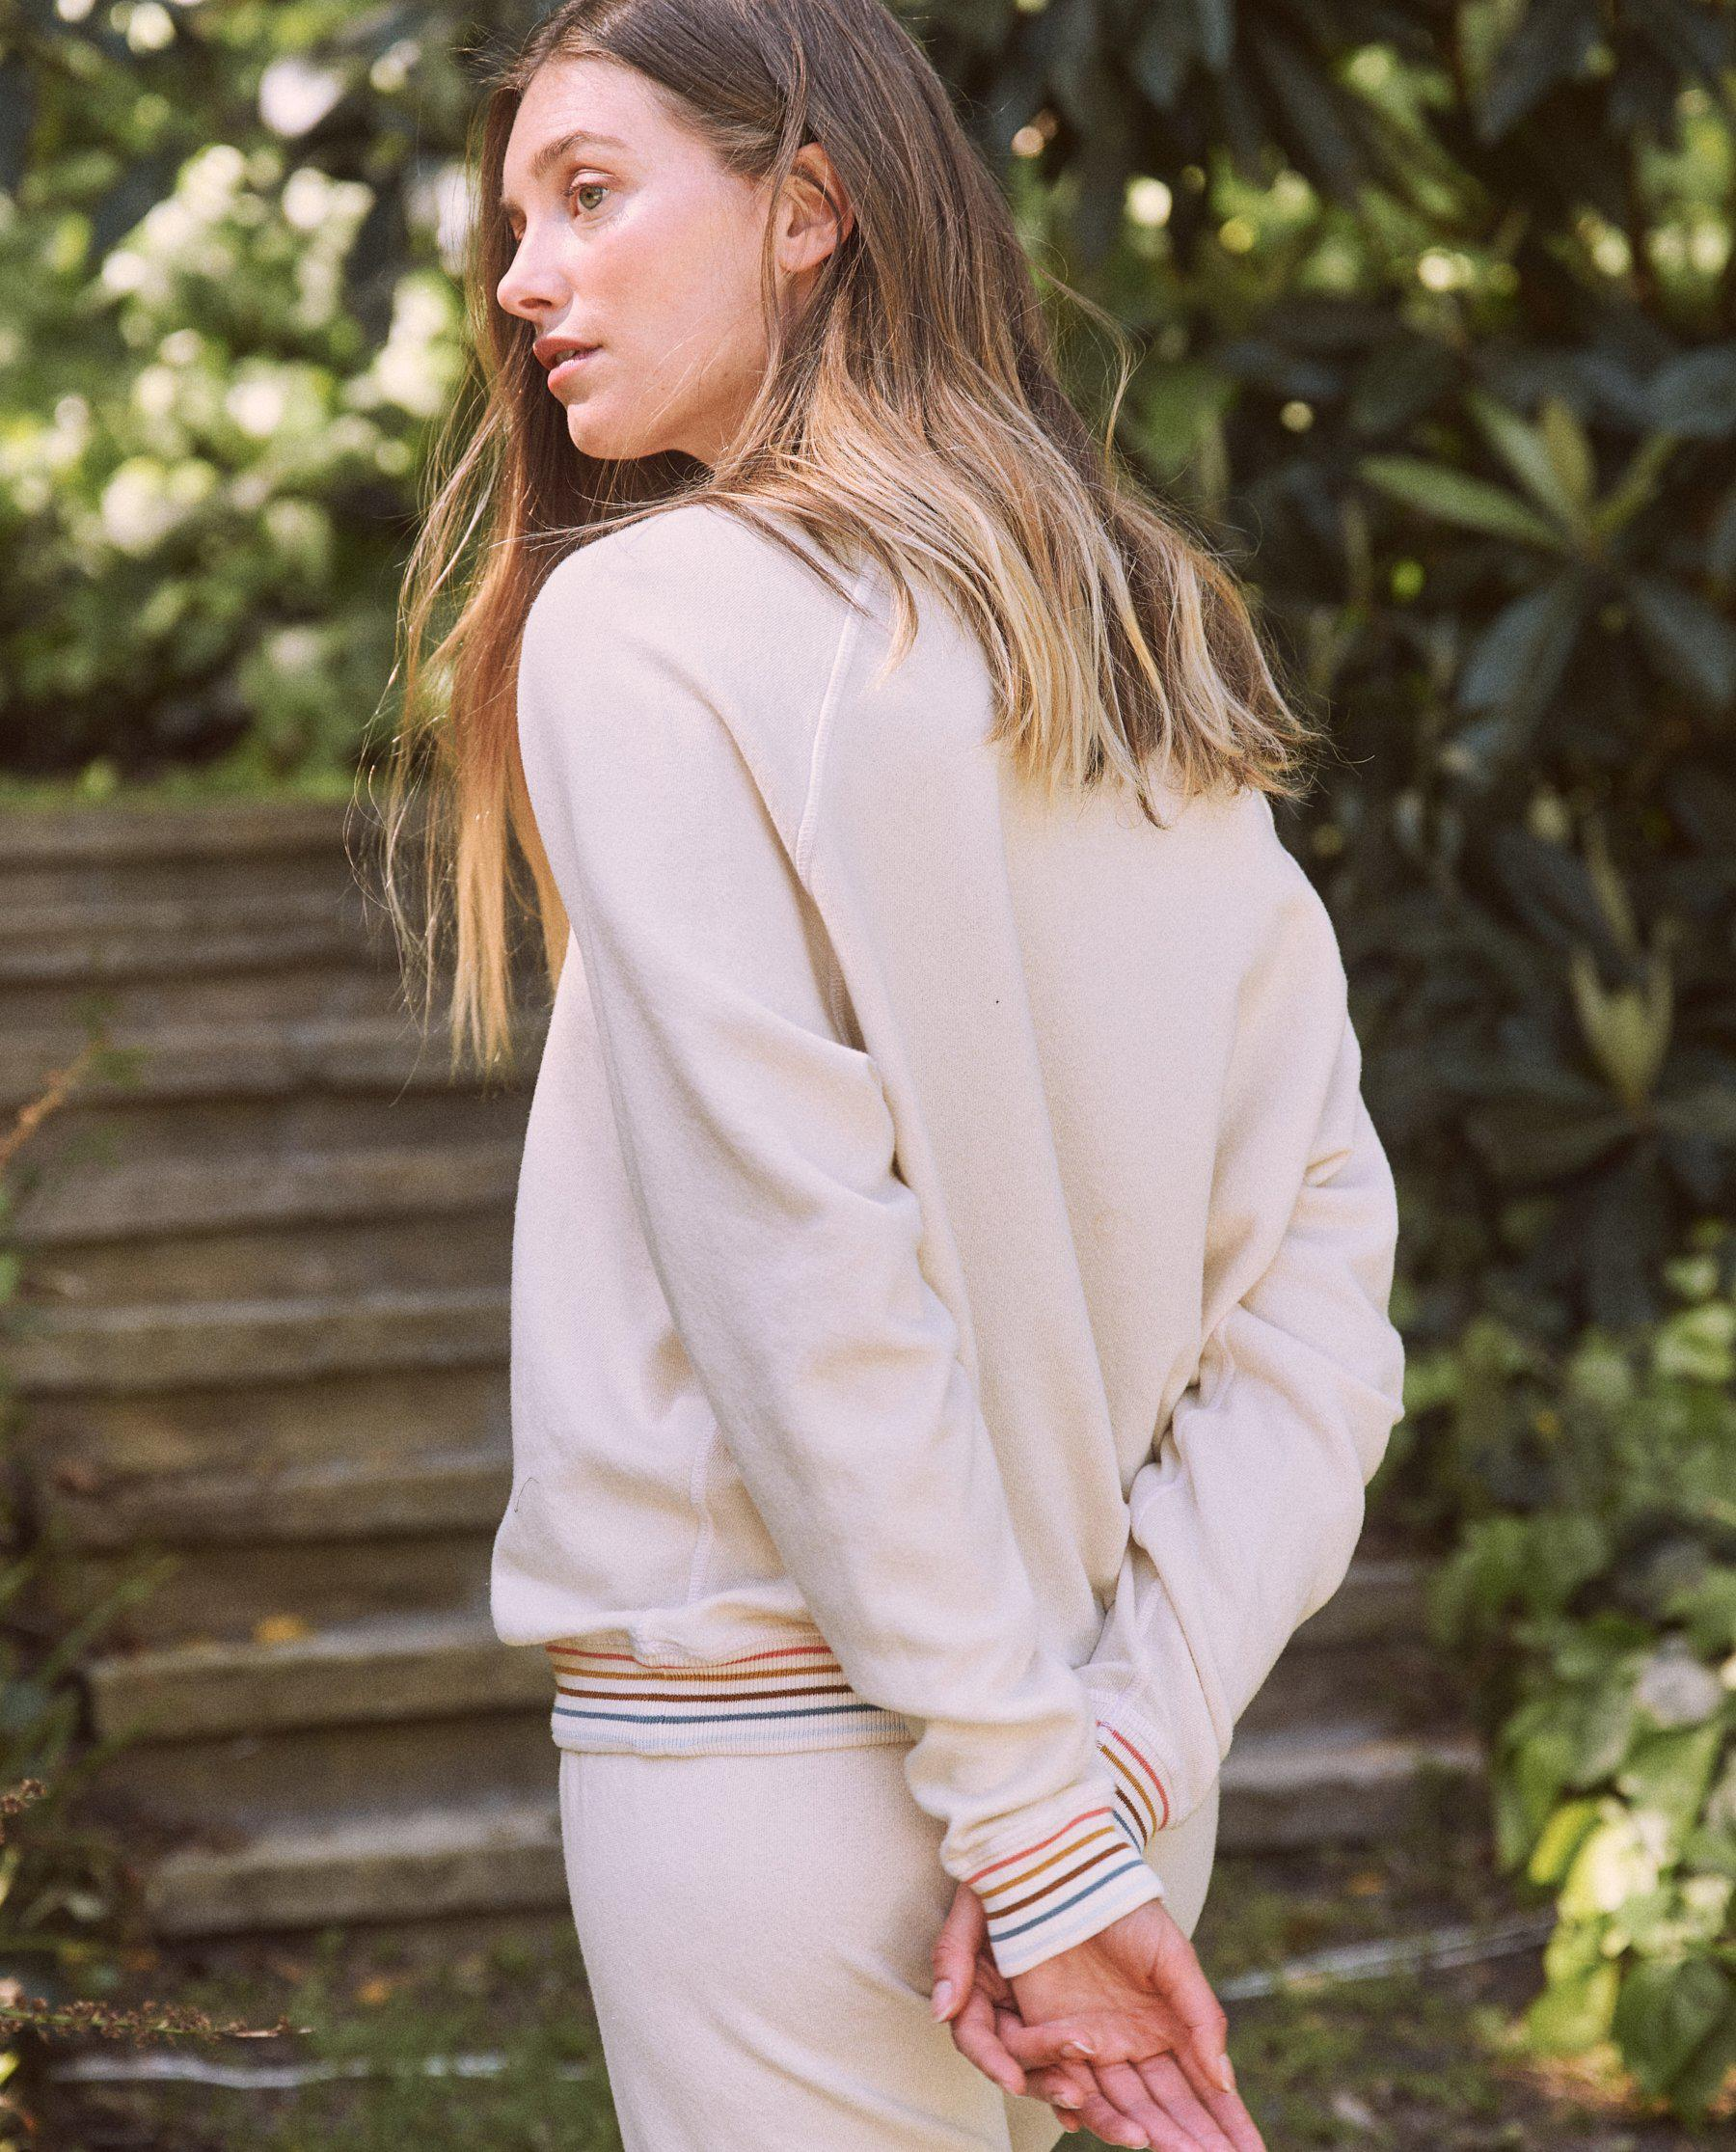 The College Sweatshirt. Novelty -- Washed White with Striped Rib 3